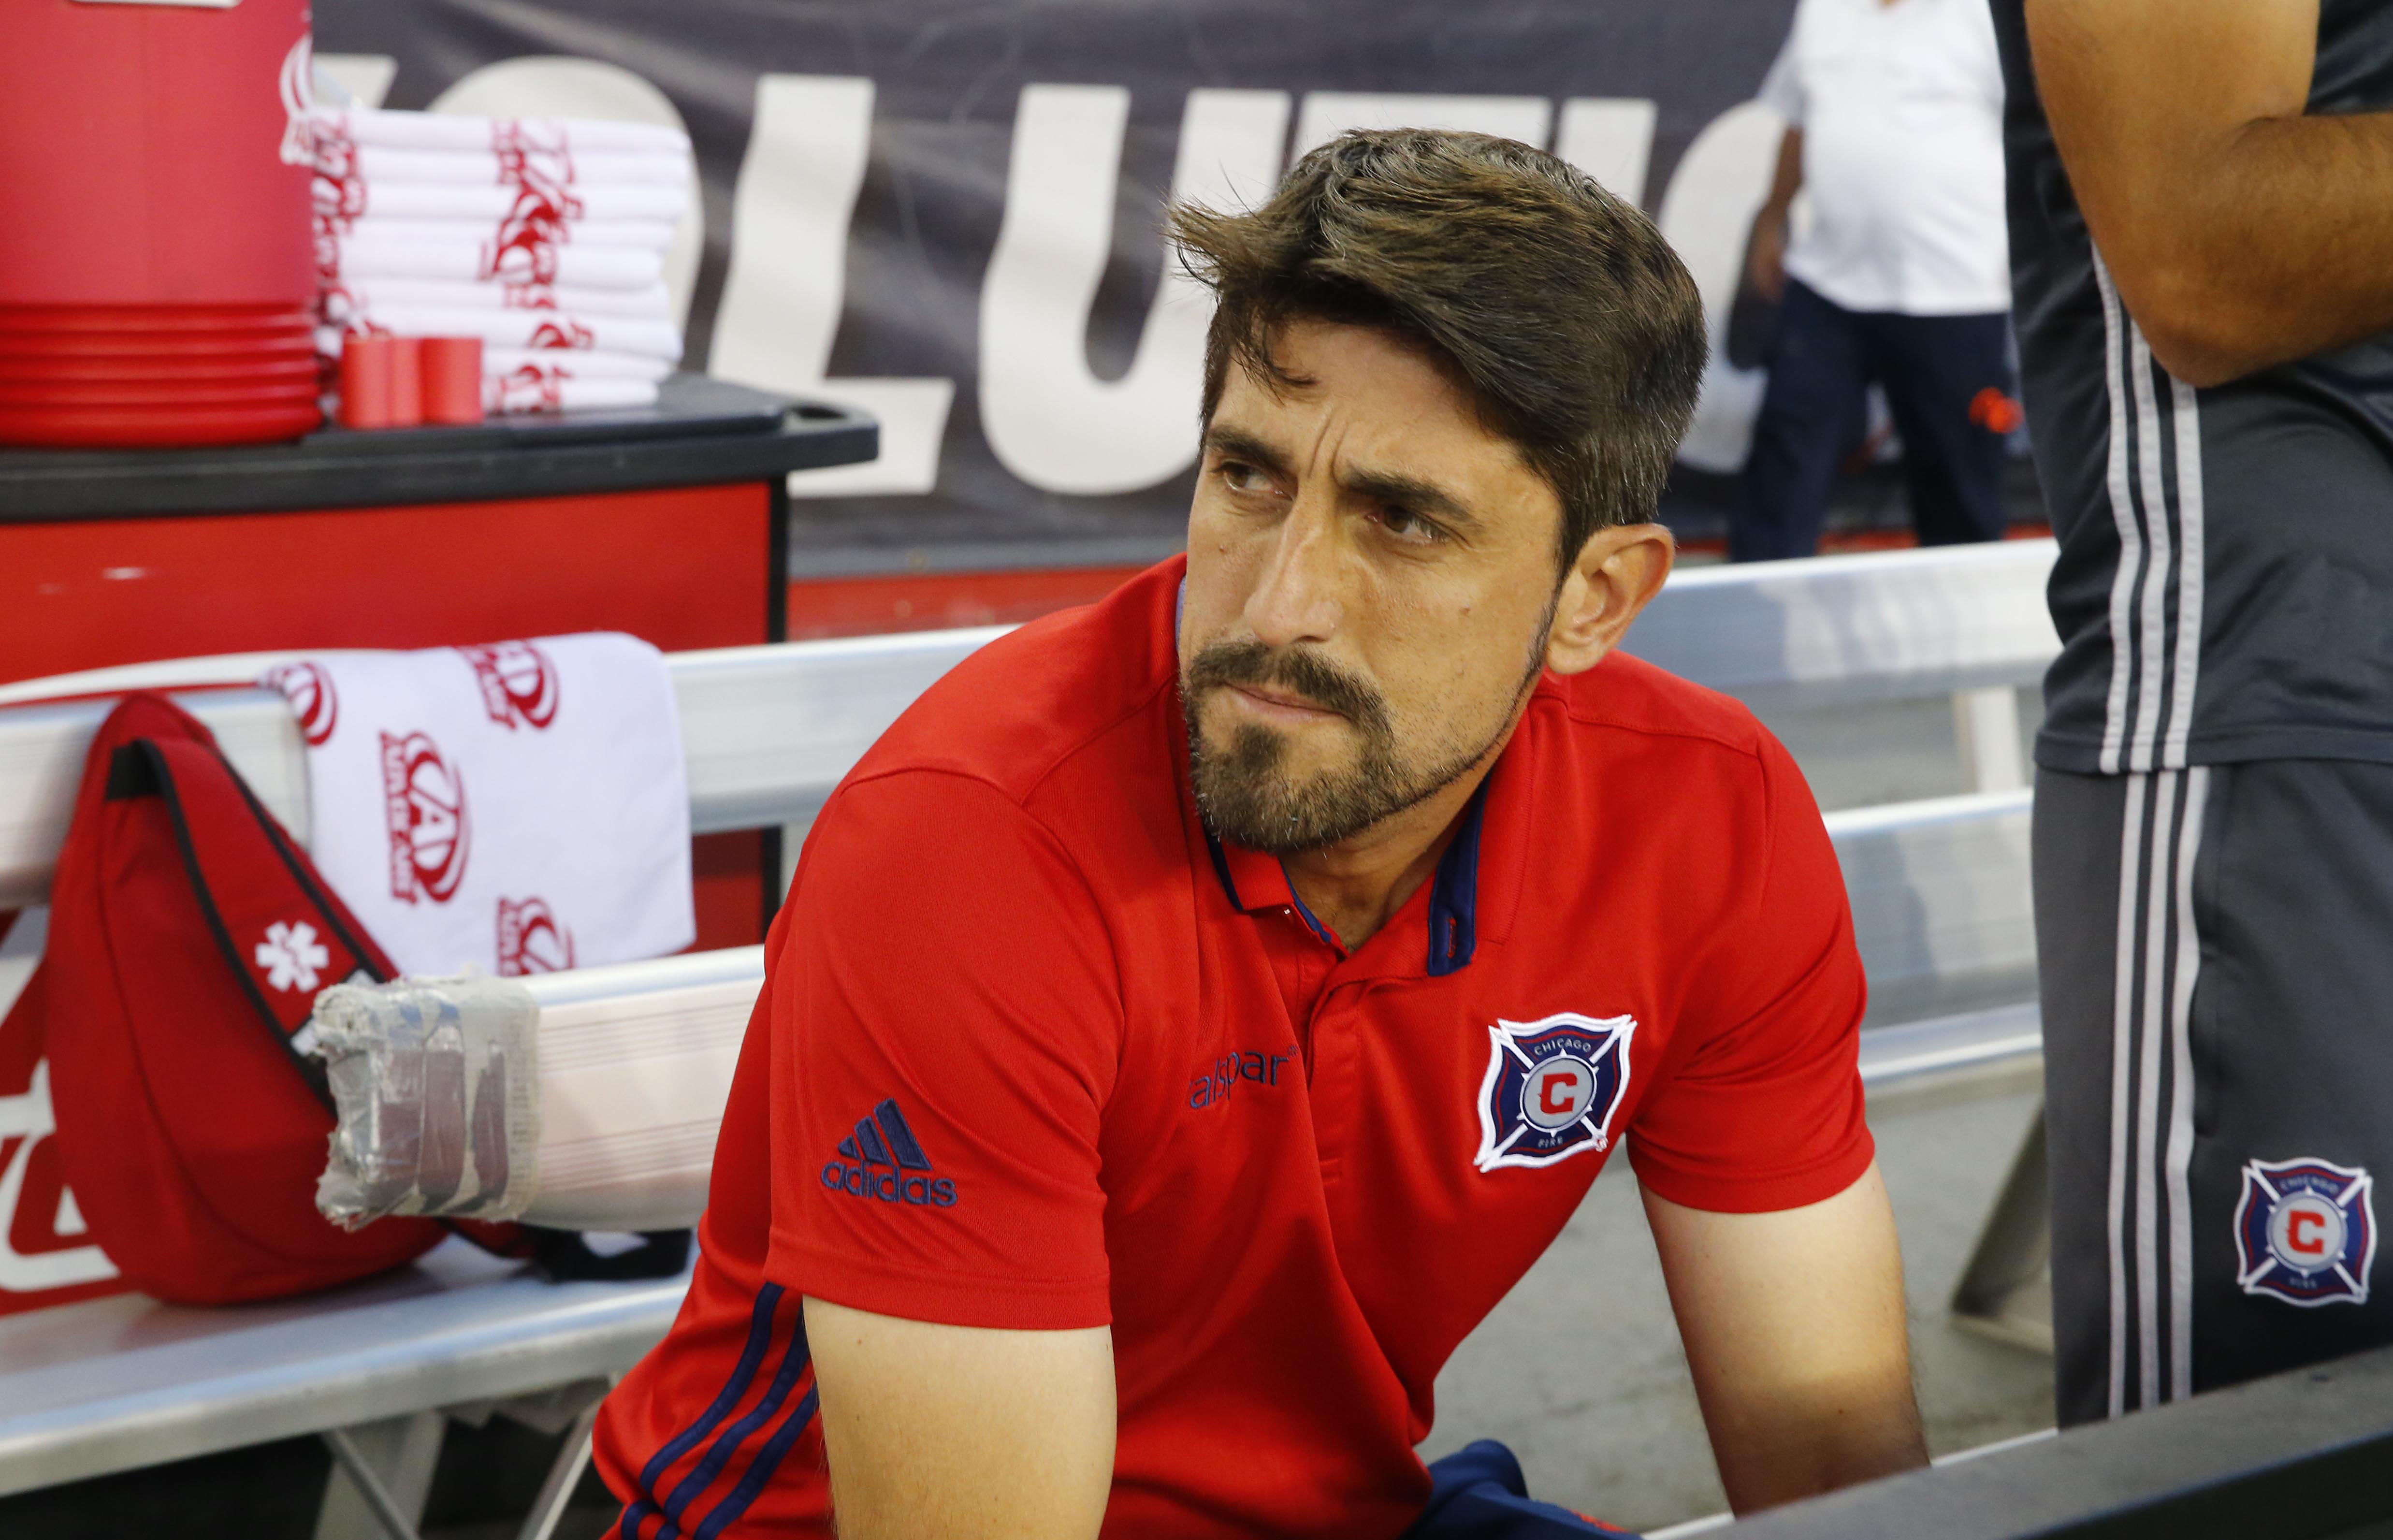 Jul 23, 2016; Foxborough, MA, USA; Chicago Fire head coach Veljko Paunovic looks on before their game against the New England Revolution at Gillette Stadium. Mandatory Credit: Winslow Townson-USA TODAY Sports